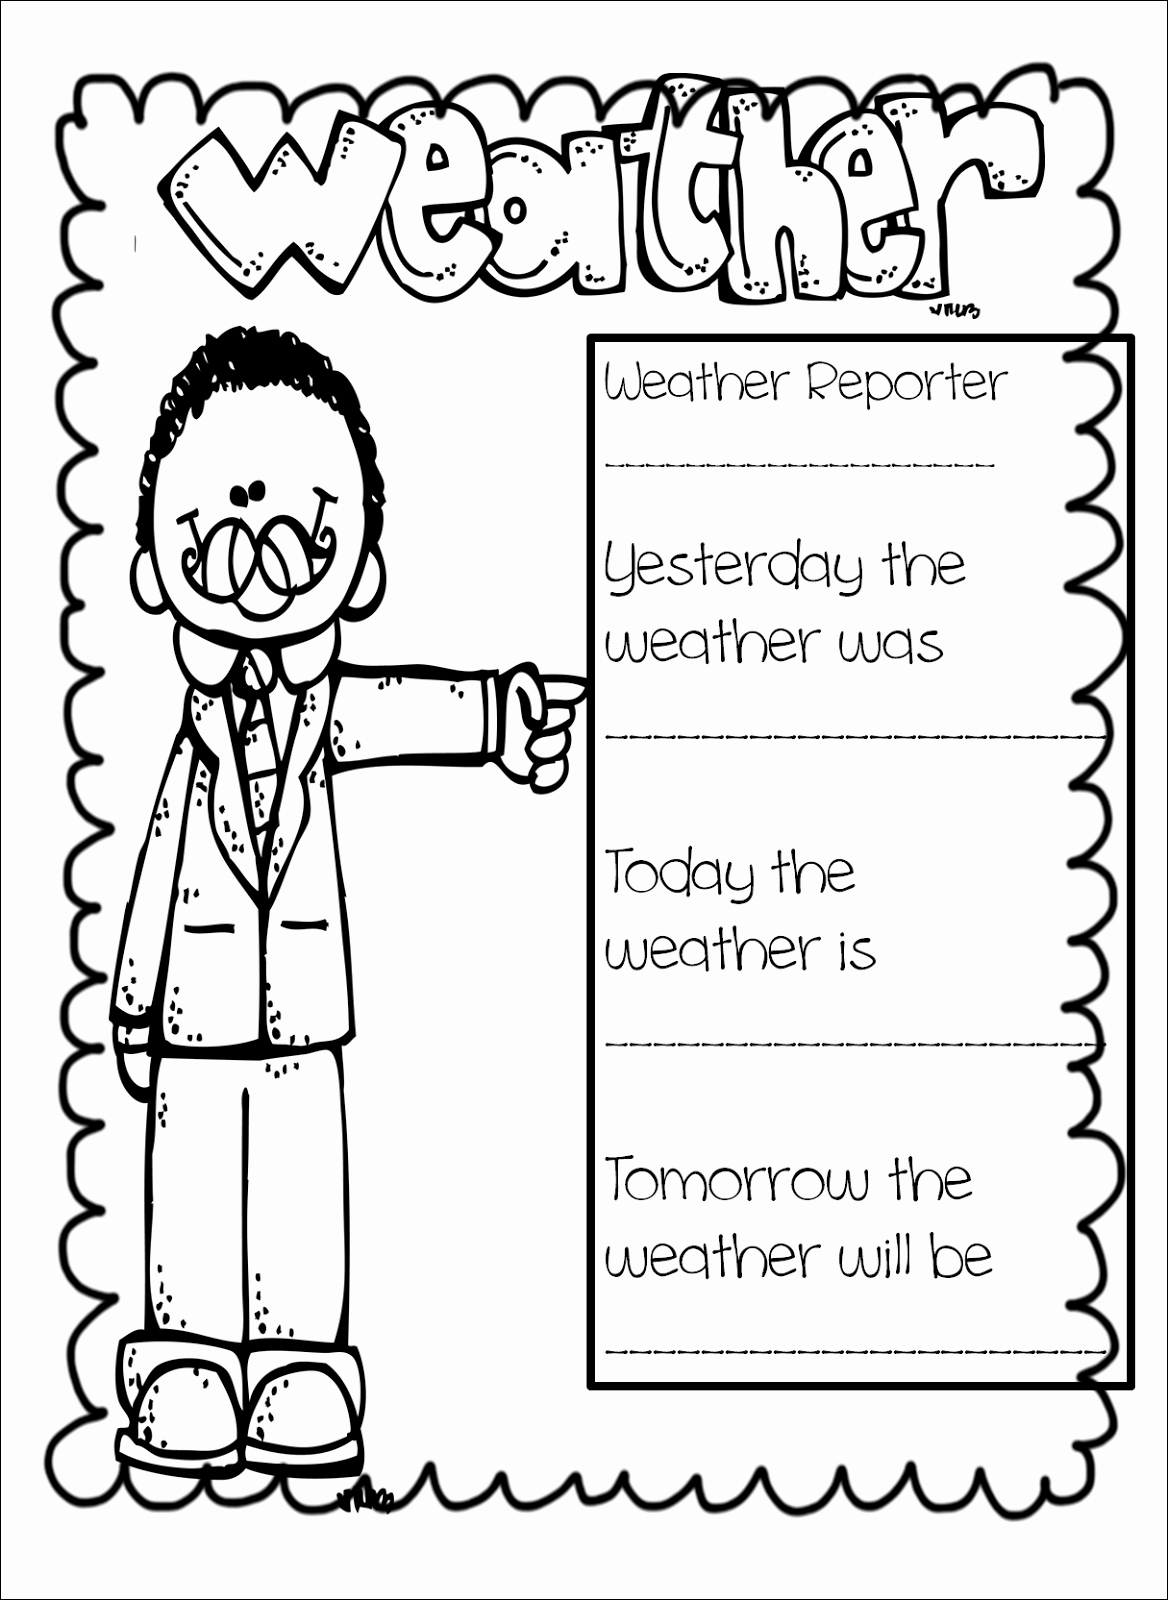 Seasons Worksheets for First Grade Awesome Hello Everyone This Ing Week We Will Learn A Little